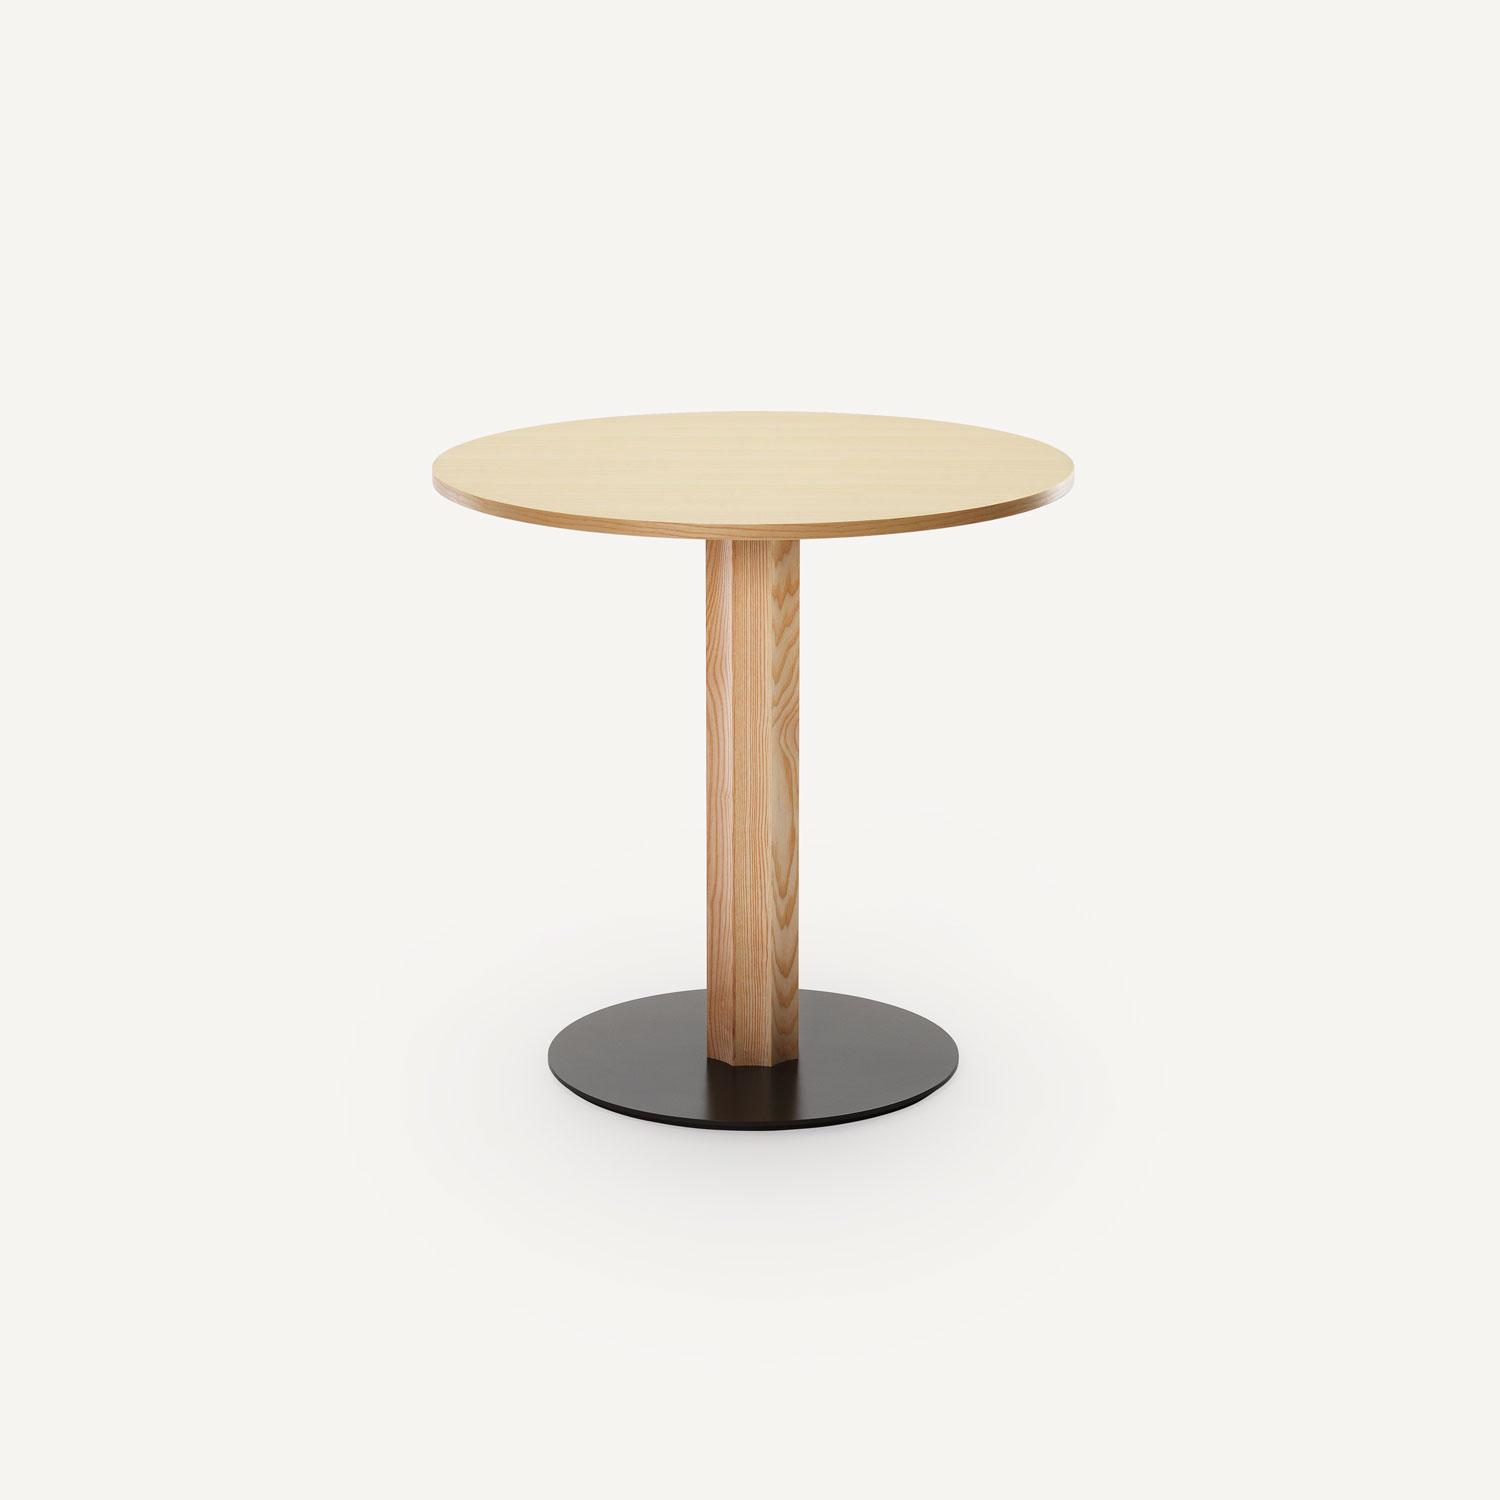 OC table by Mentsen